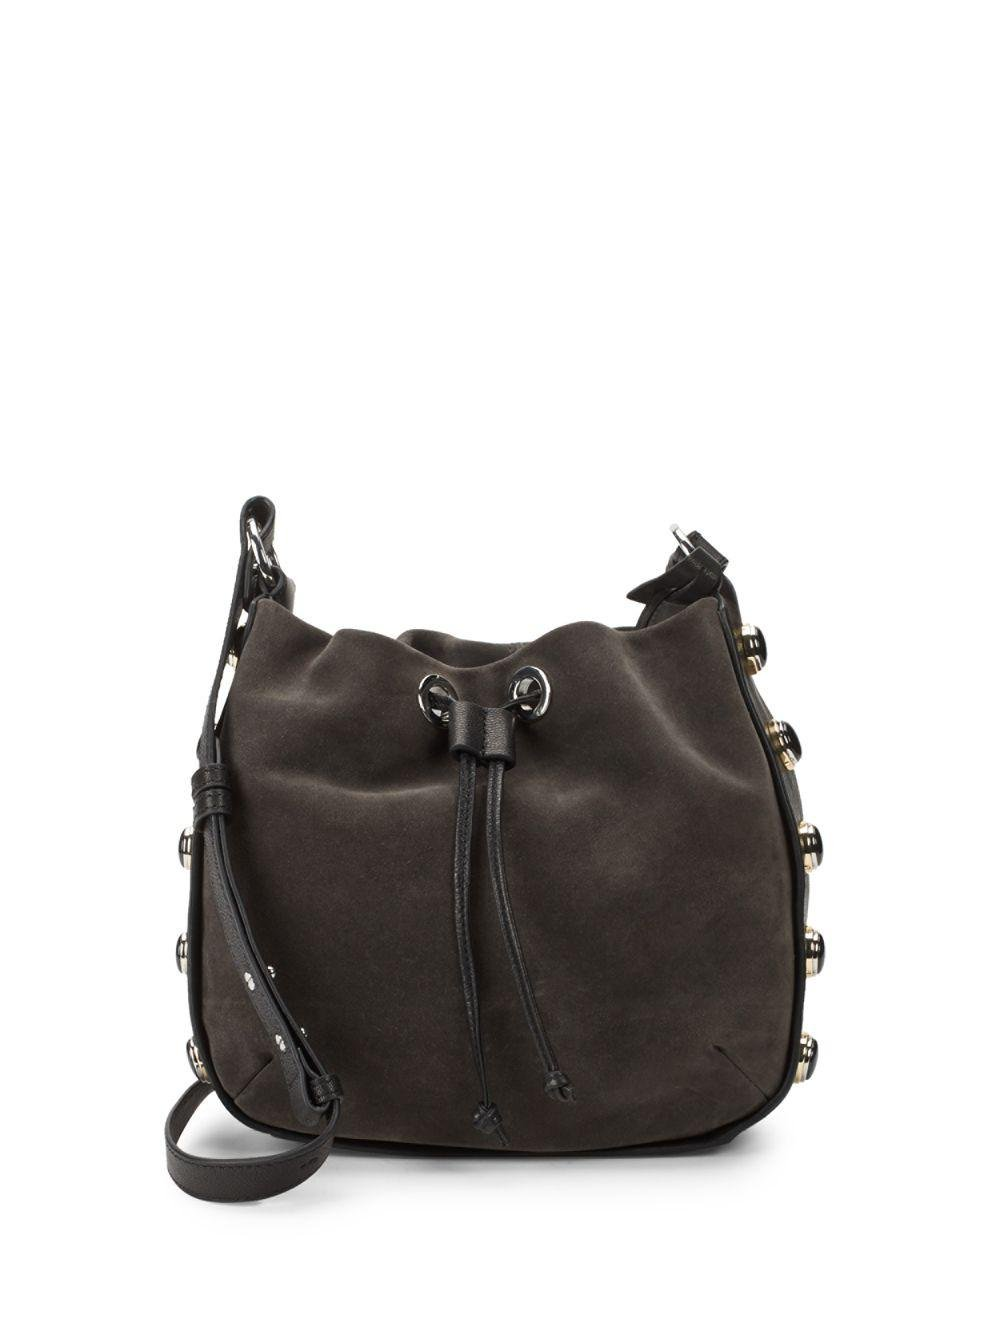 Vince Camuto Women S Black Cab Leather Bucket Bag